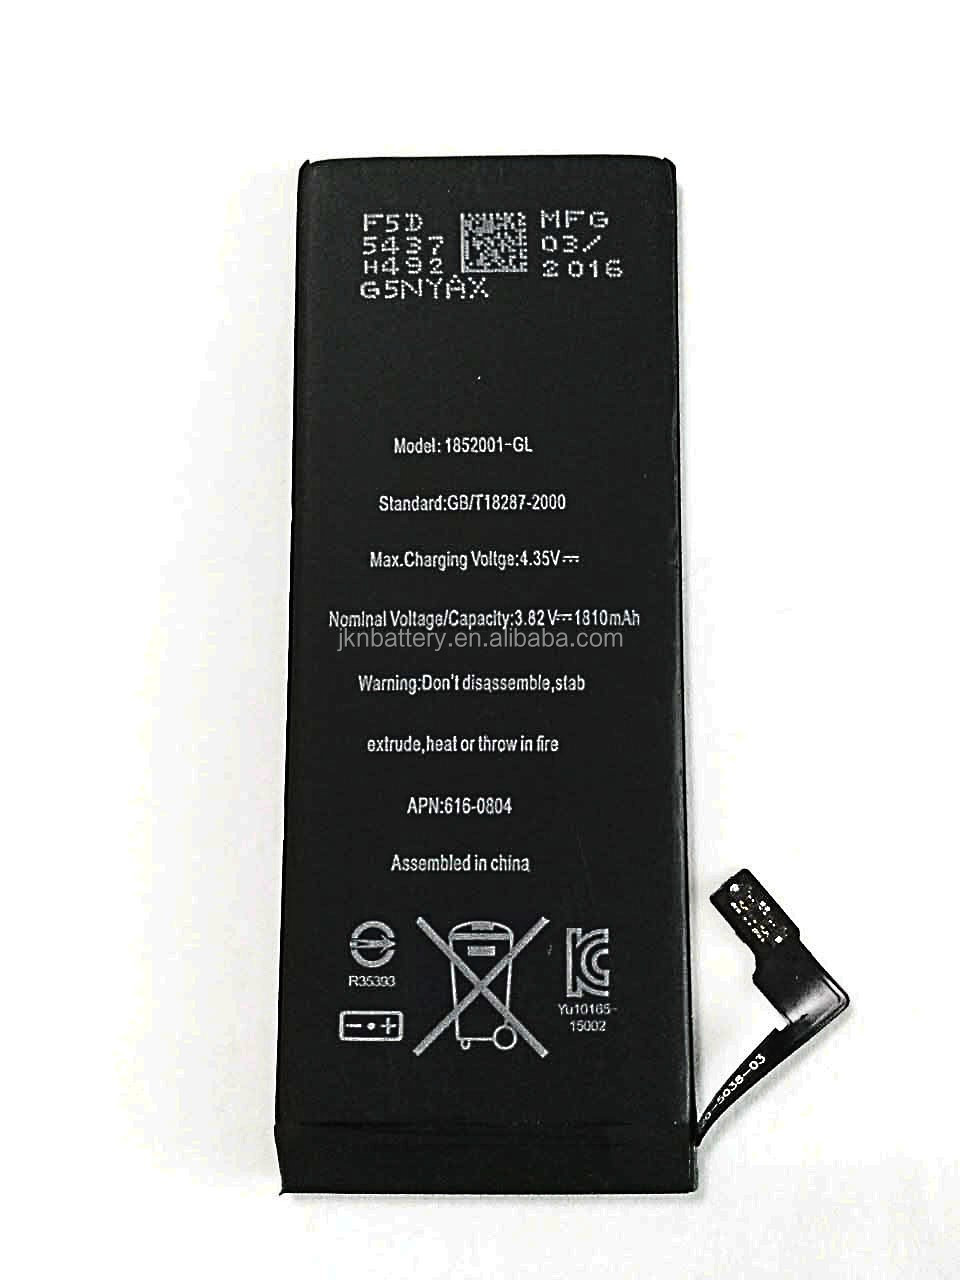 MSDS, UN38.3 Approved Phone Battery 3.8v 1440mah with Flex Cable for iphone 5